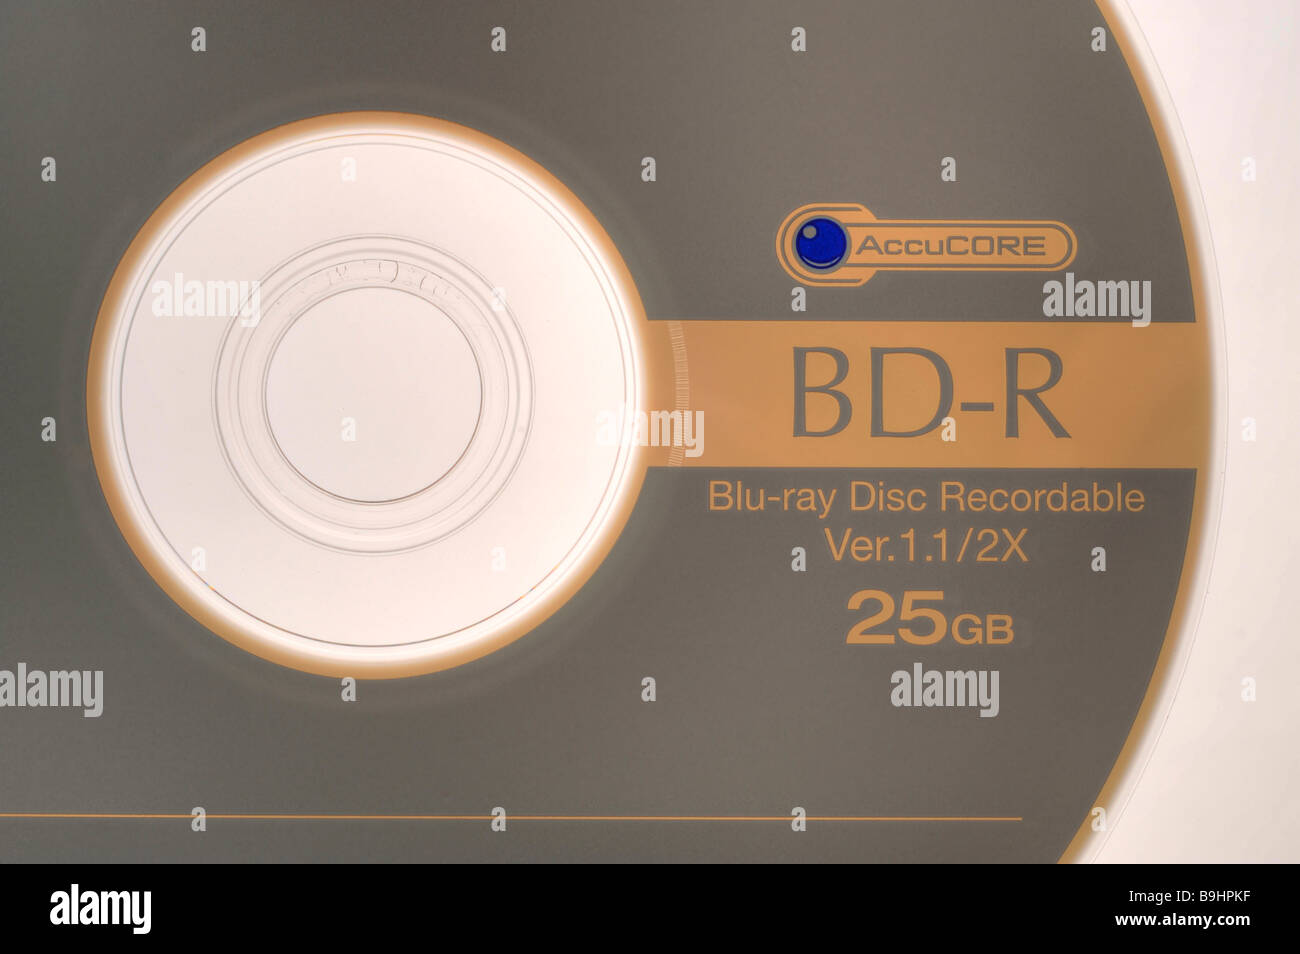 Sony BD-R Blue-Ray Recordable Disc, blank disc - Stock Image